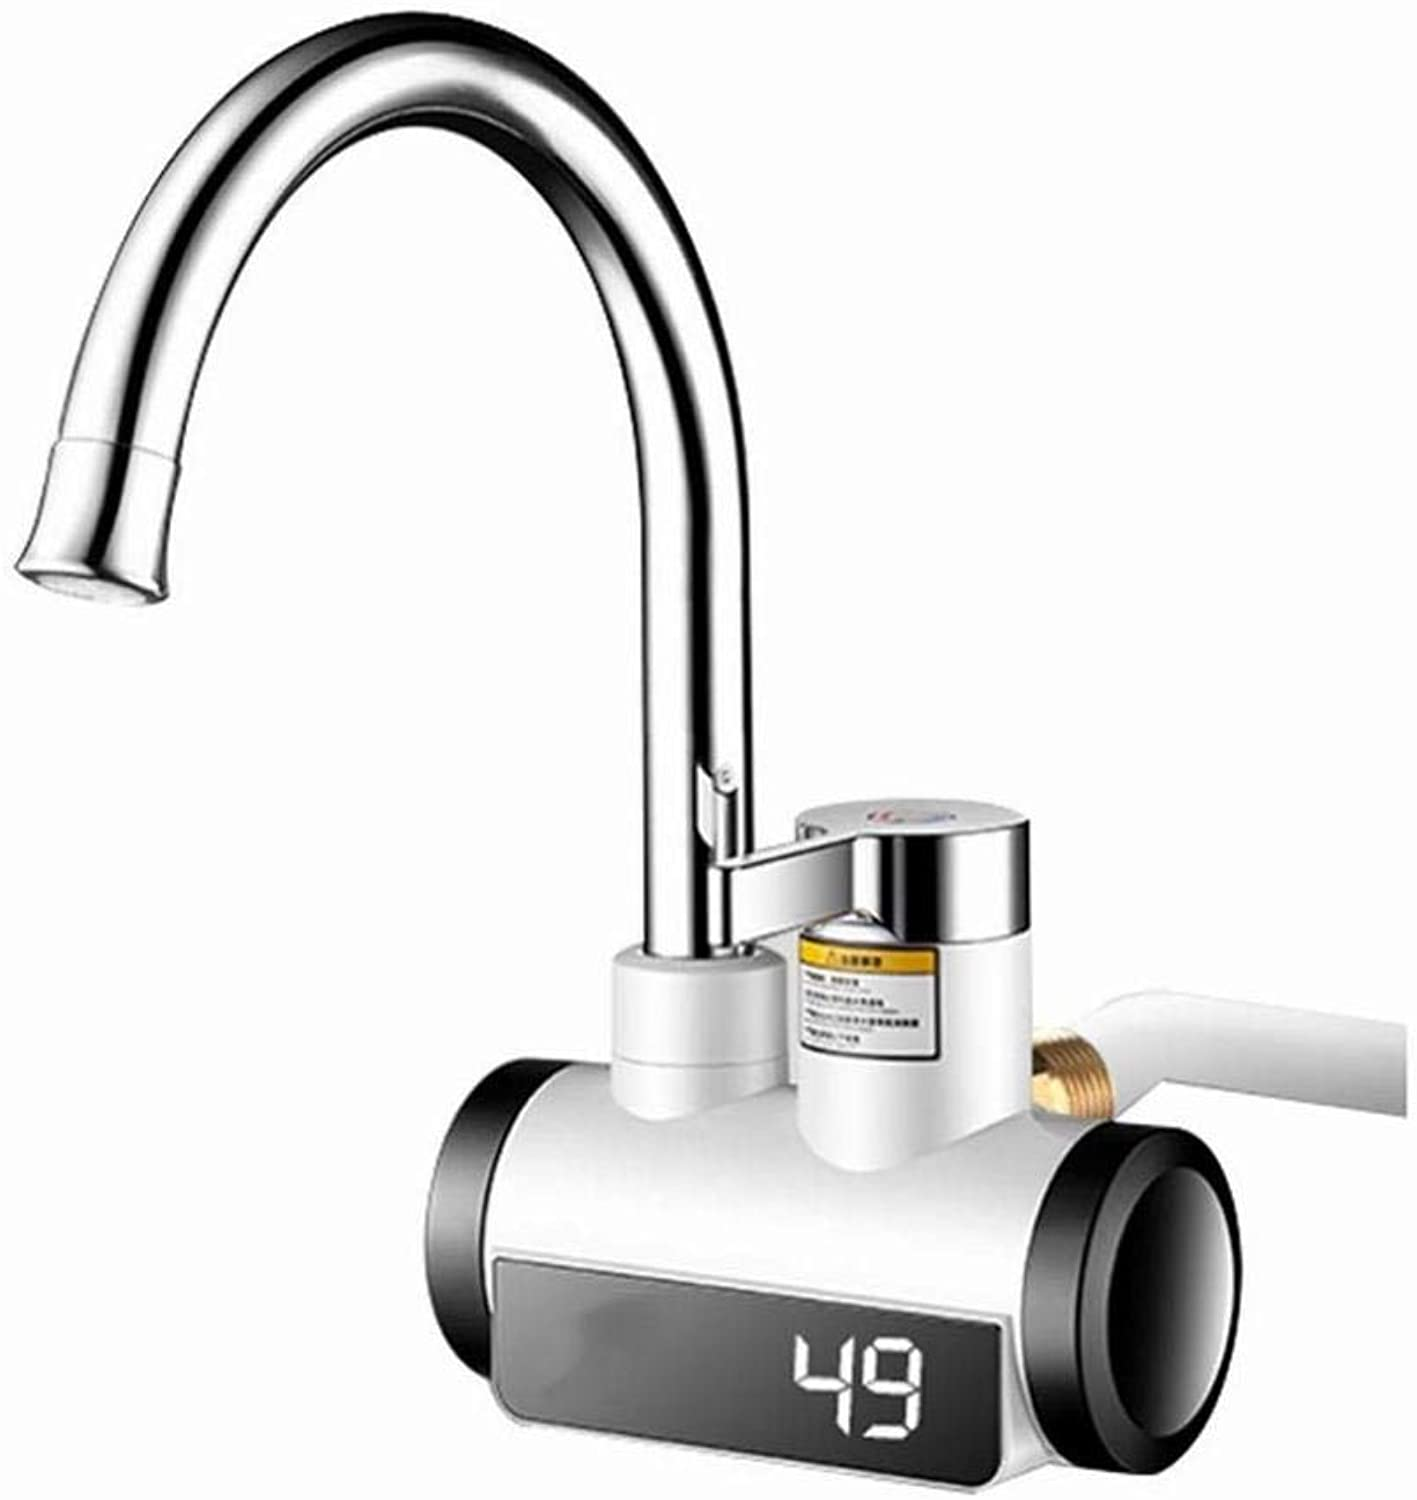 Electric Hot Water Faucet, Hot Kitchen, Small Kitchen Treasure, Fast Heating, Hot Water, Hot Water, Domestic Water Heater,As Show,One Size